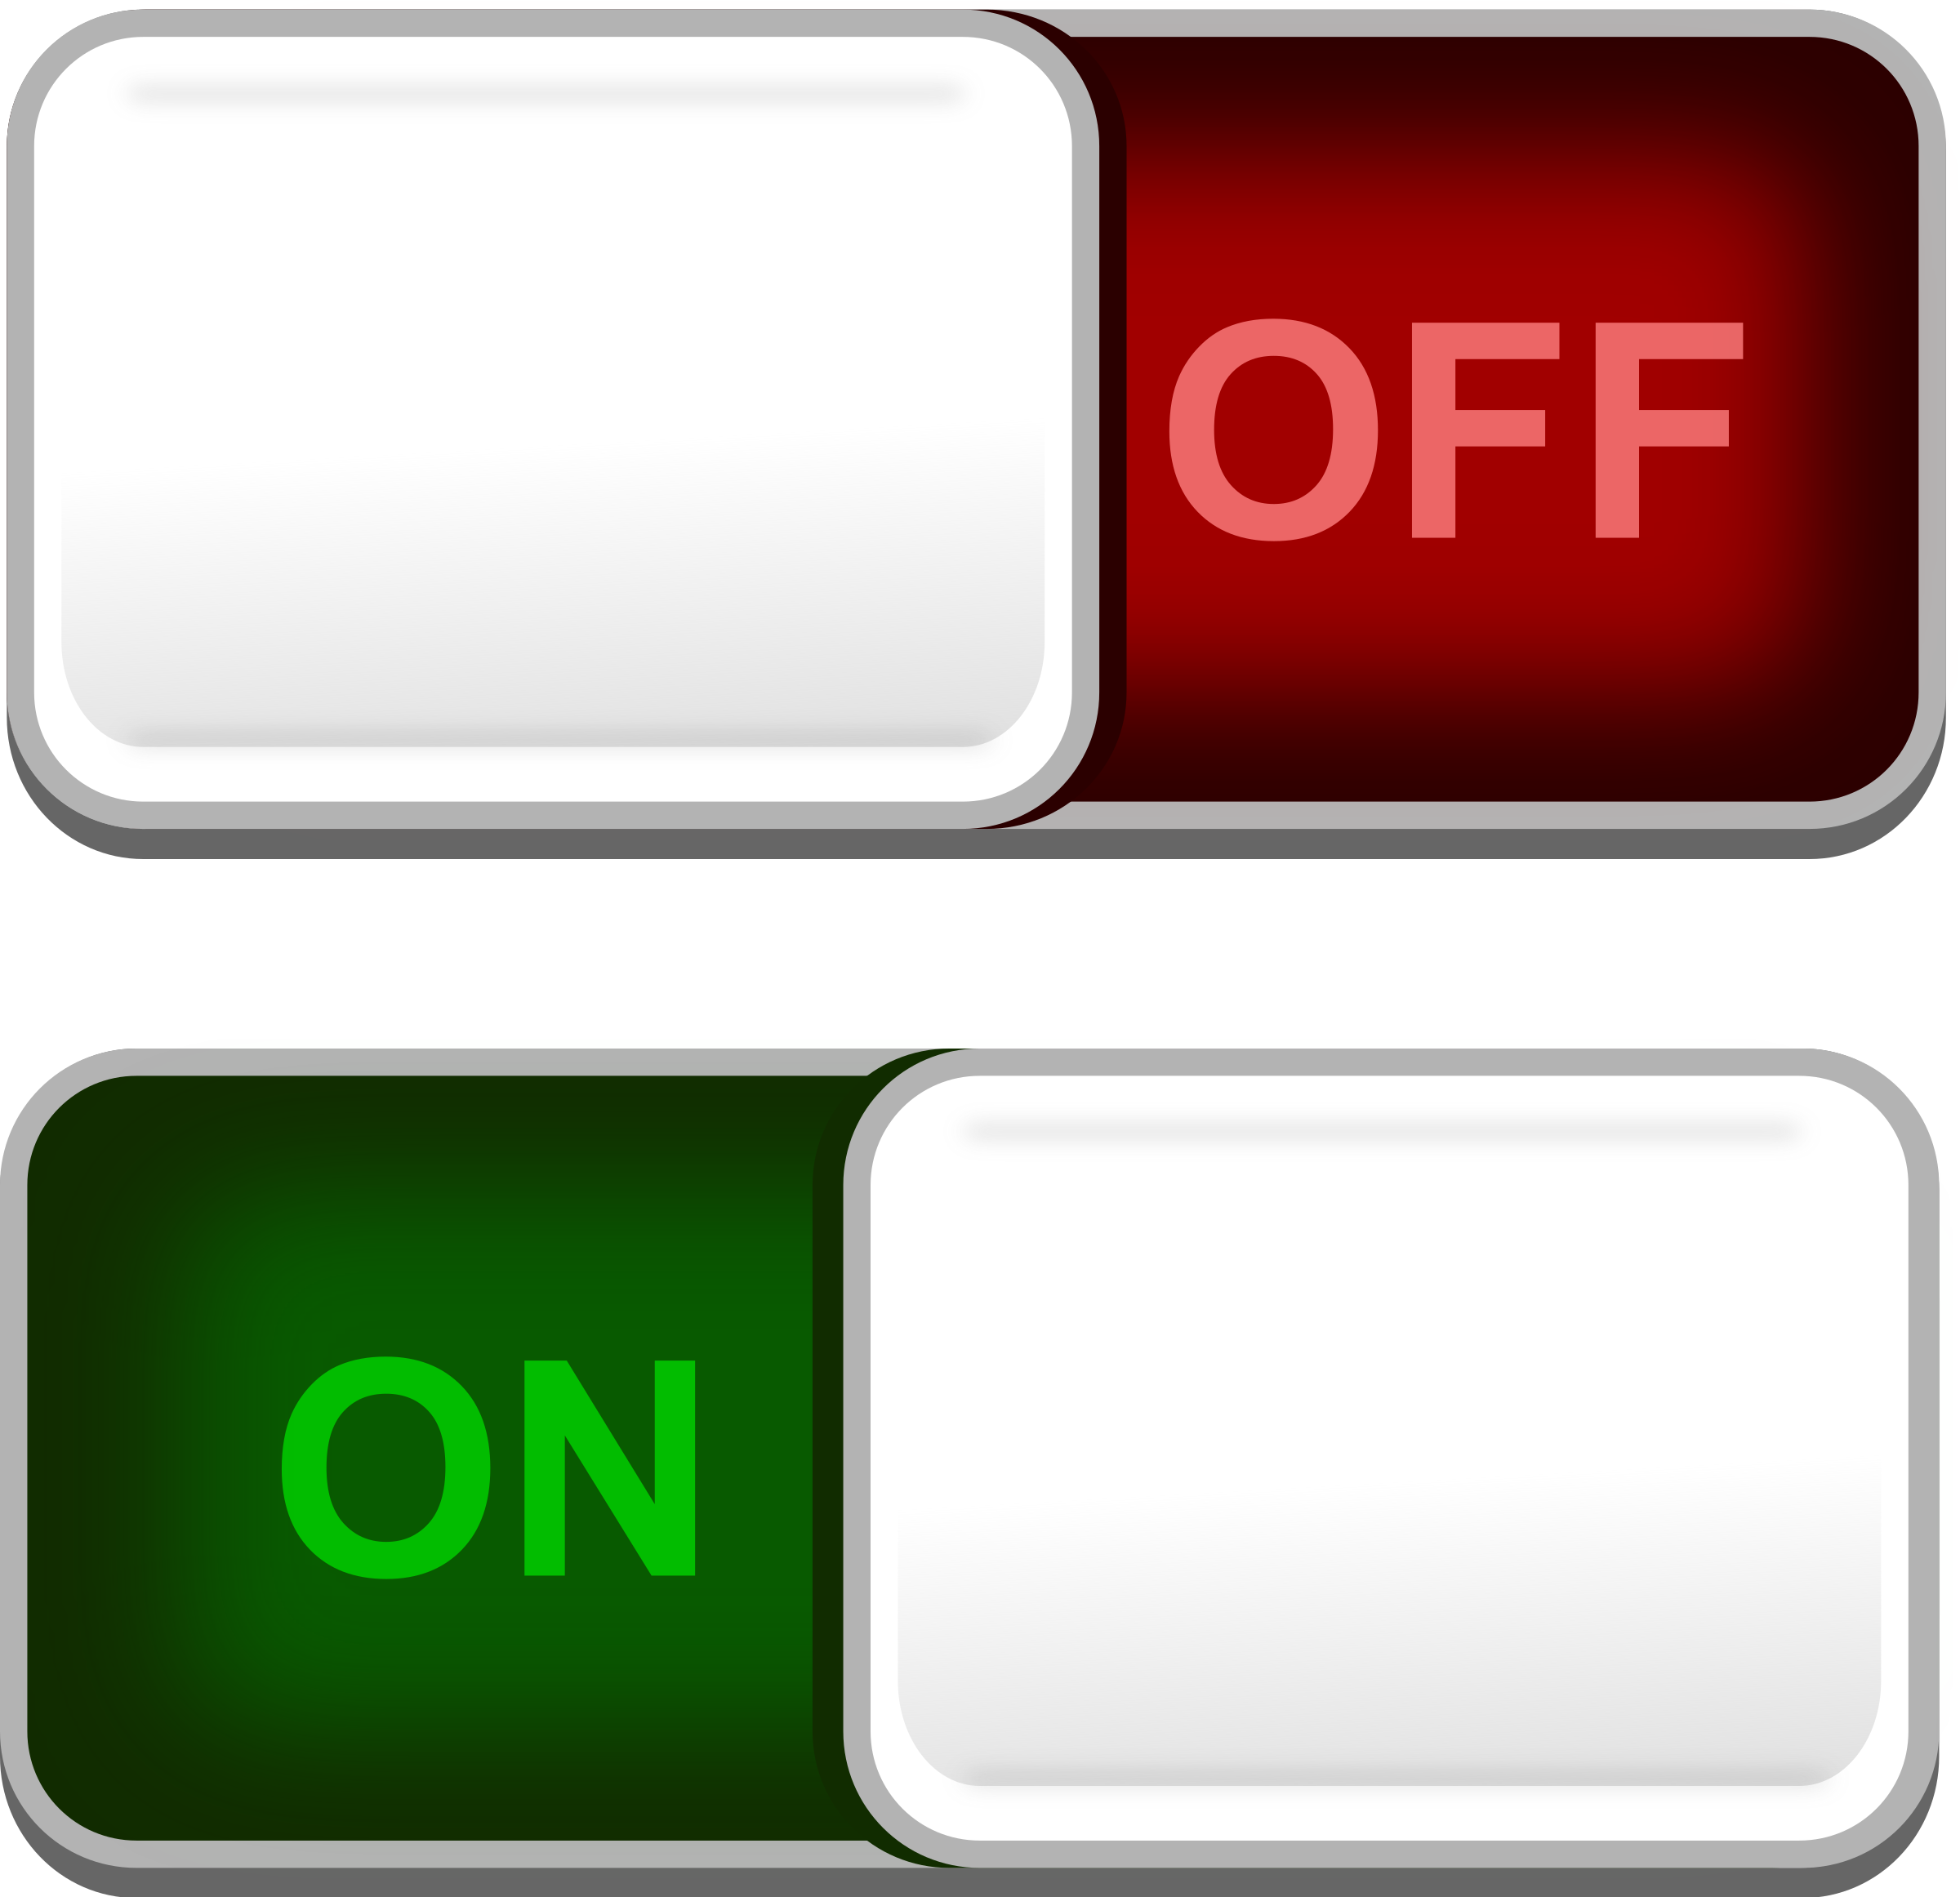 On off rocker switch symbols choice image symbol and sign ideas great switch symbols on off contemporary electrical circuit generous toggle switch on off symbols ideas electrical biocorpaavc